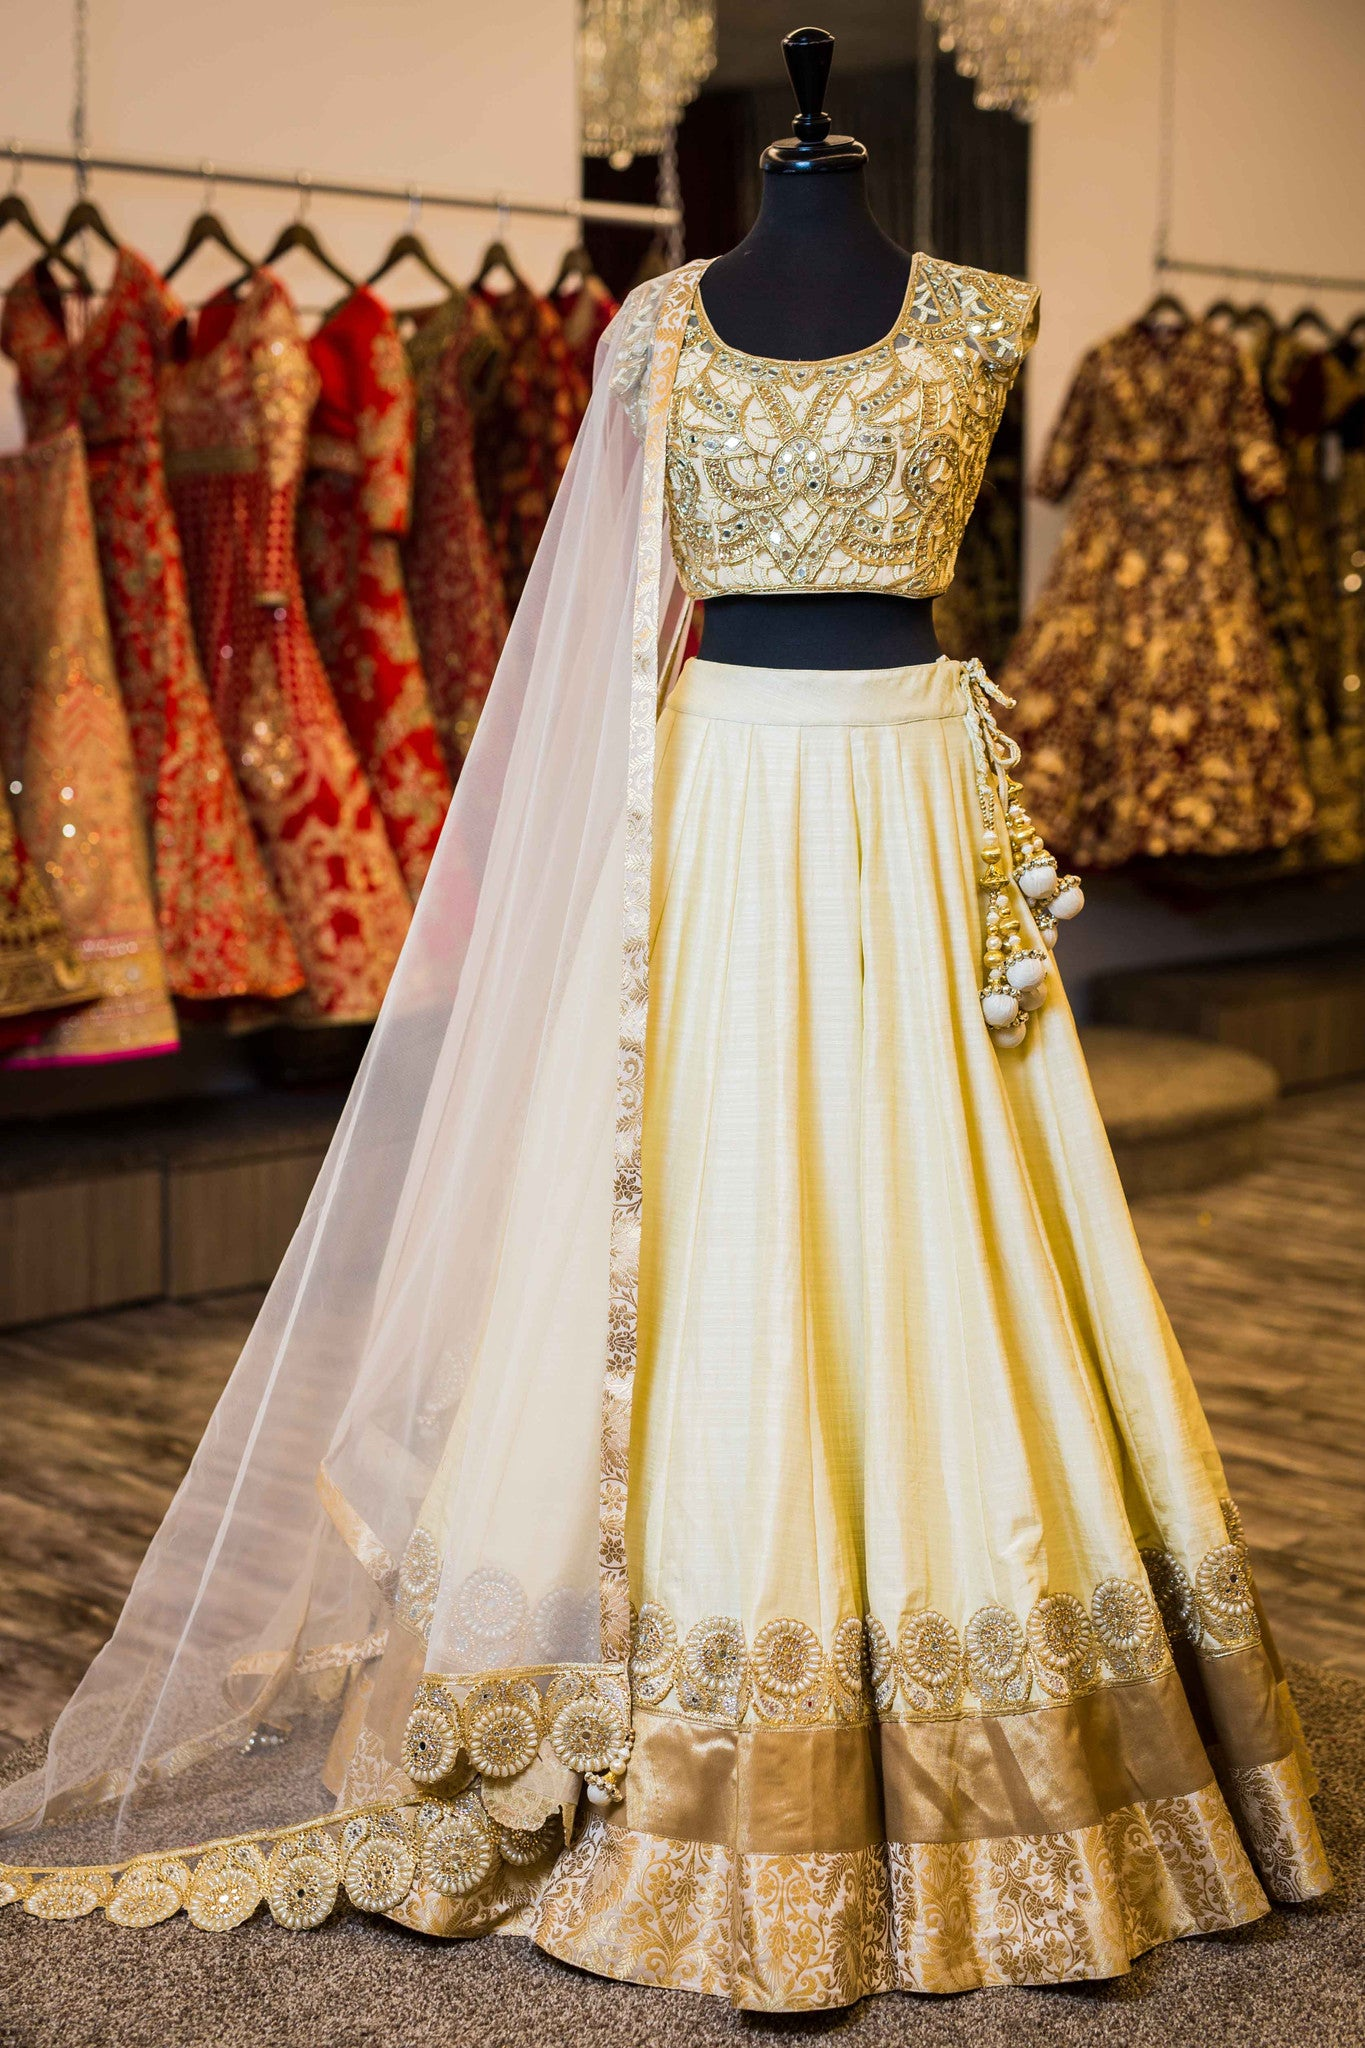 d0e9675b27 Champagne and Gold Lengha - WellGroomed Designs Inc